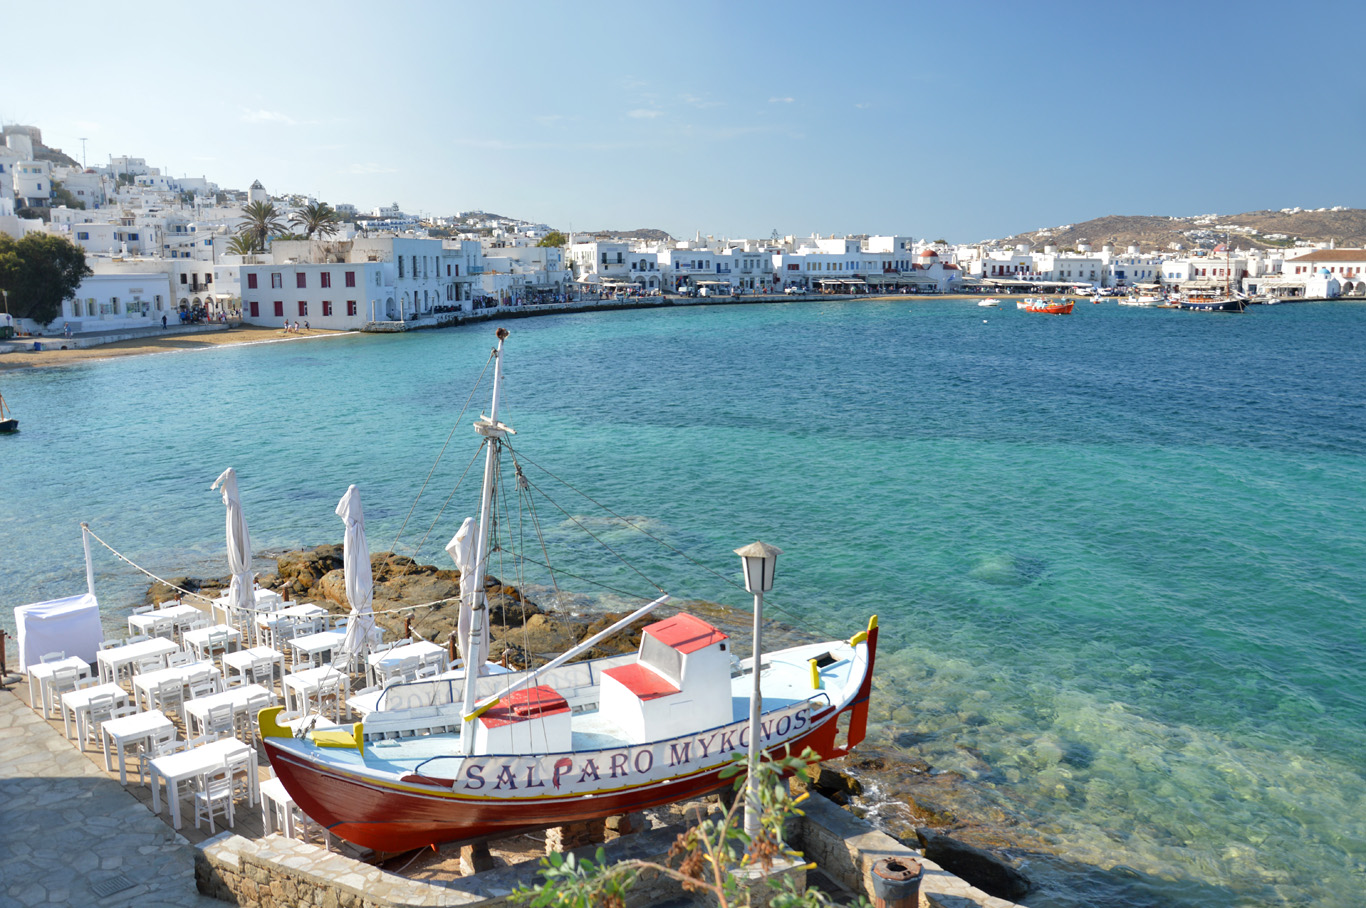 The coast in Mykonos town